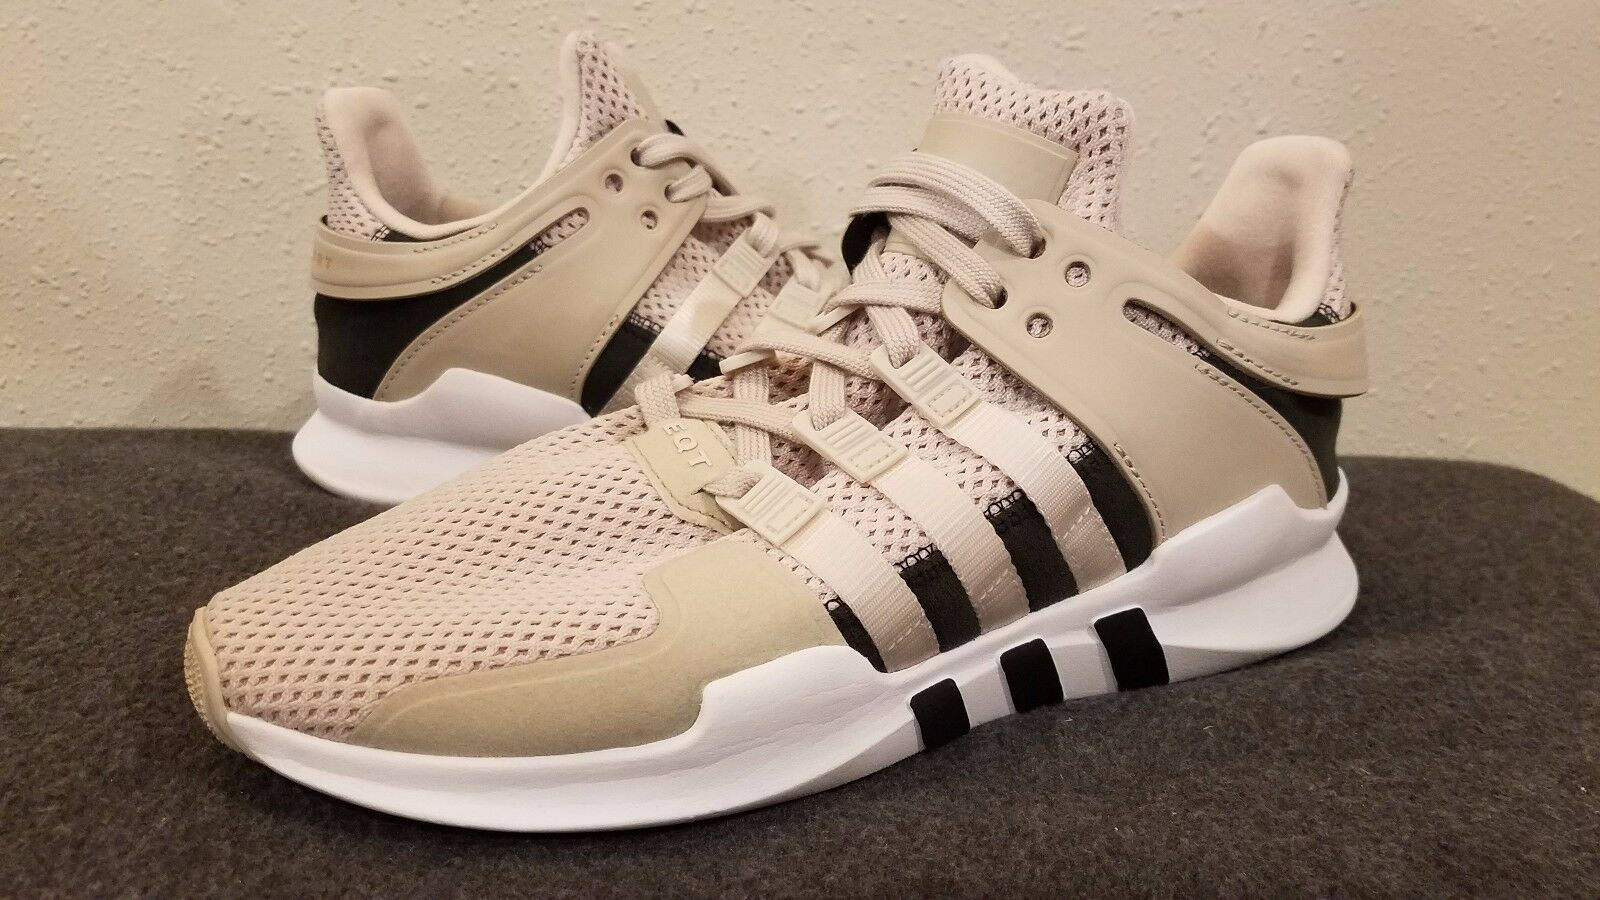 adidas Originals EQT Support ADV Equipment Men's Br/blanc/Noir CQ0918 sz 8.5